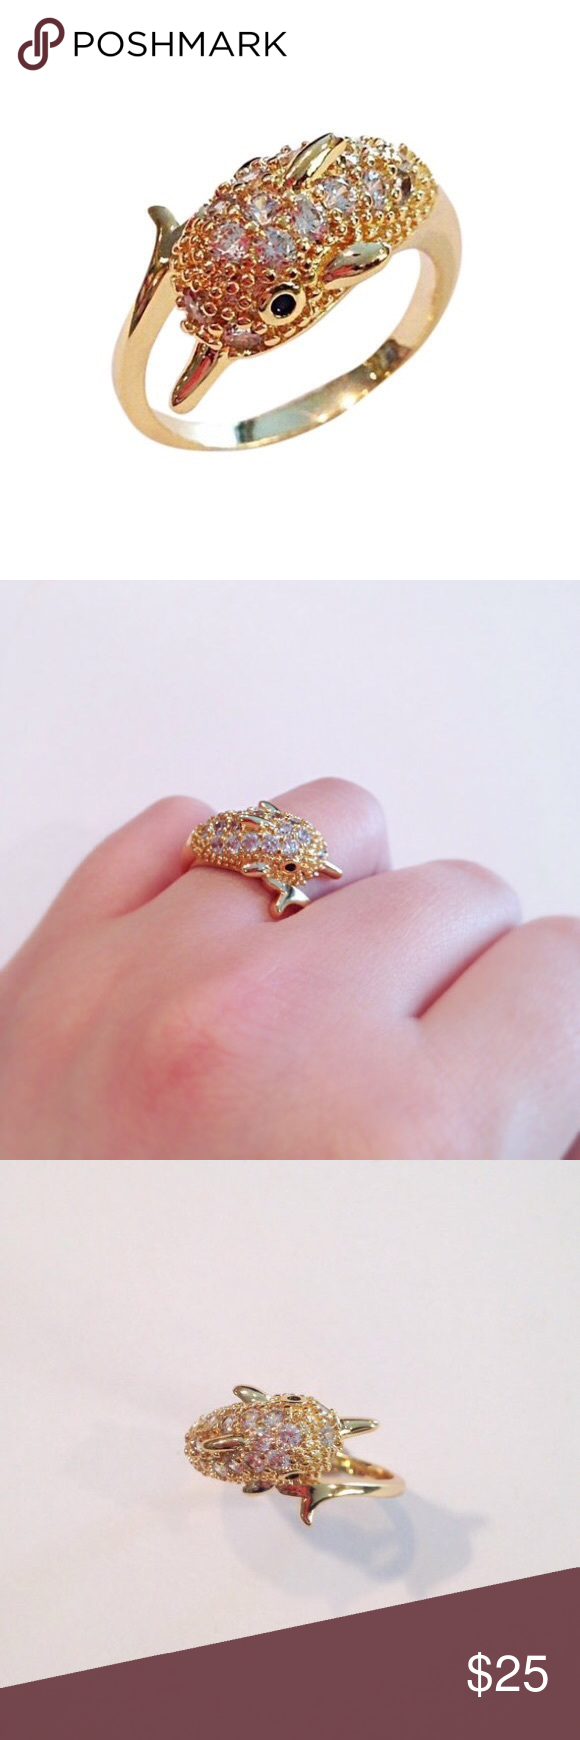 Beach Inspired CZ Gold Plated dolphin Shaped Ring NWT | Pinterest ...